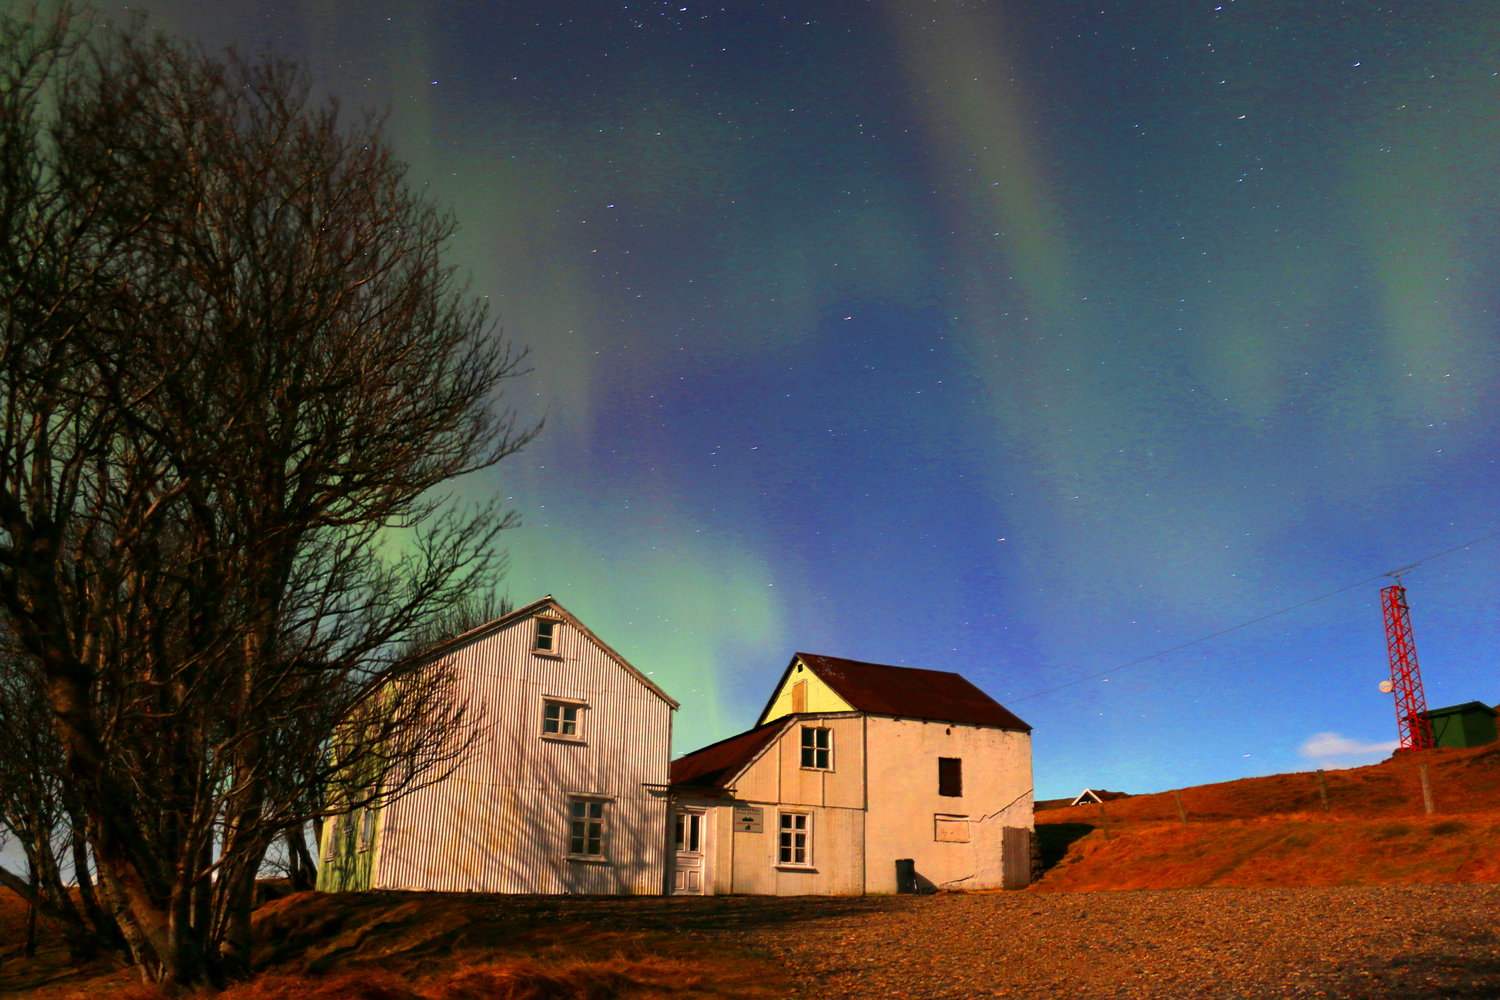 Northern lights dancing above the hostel